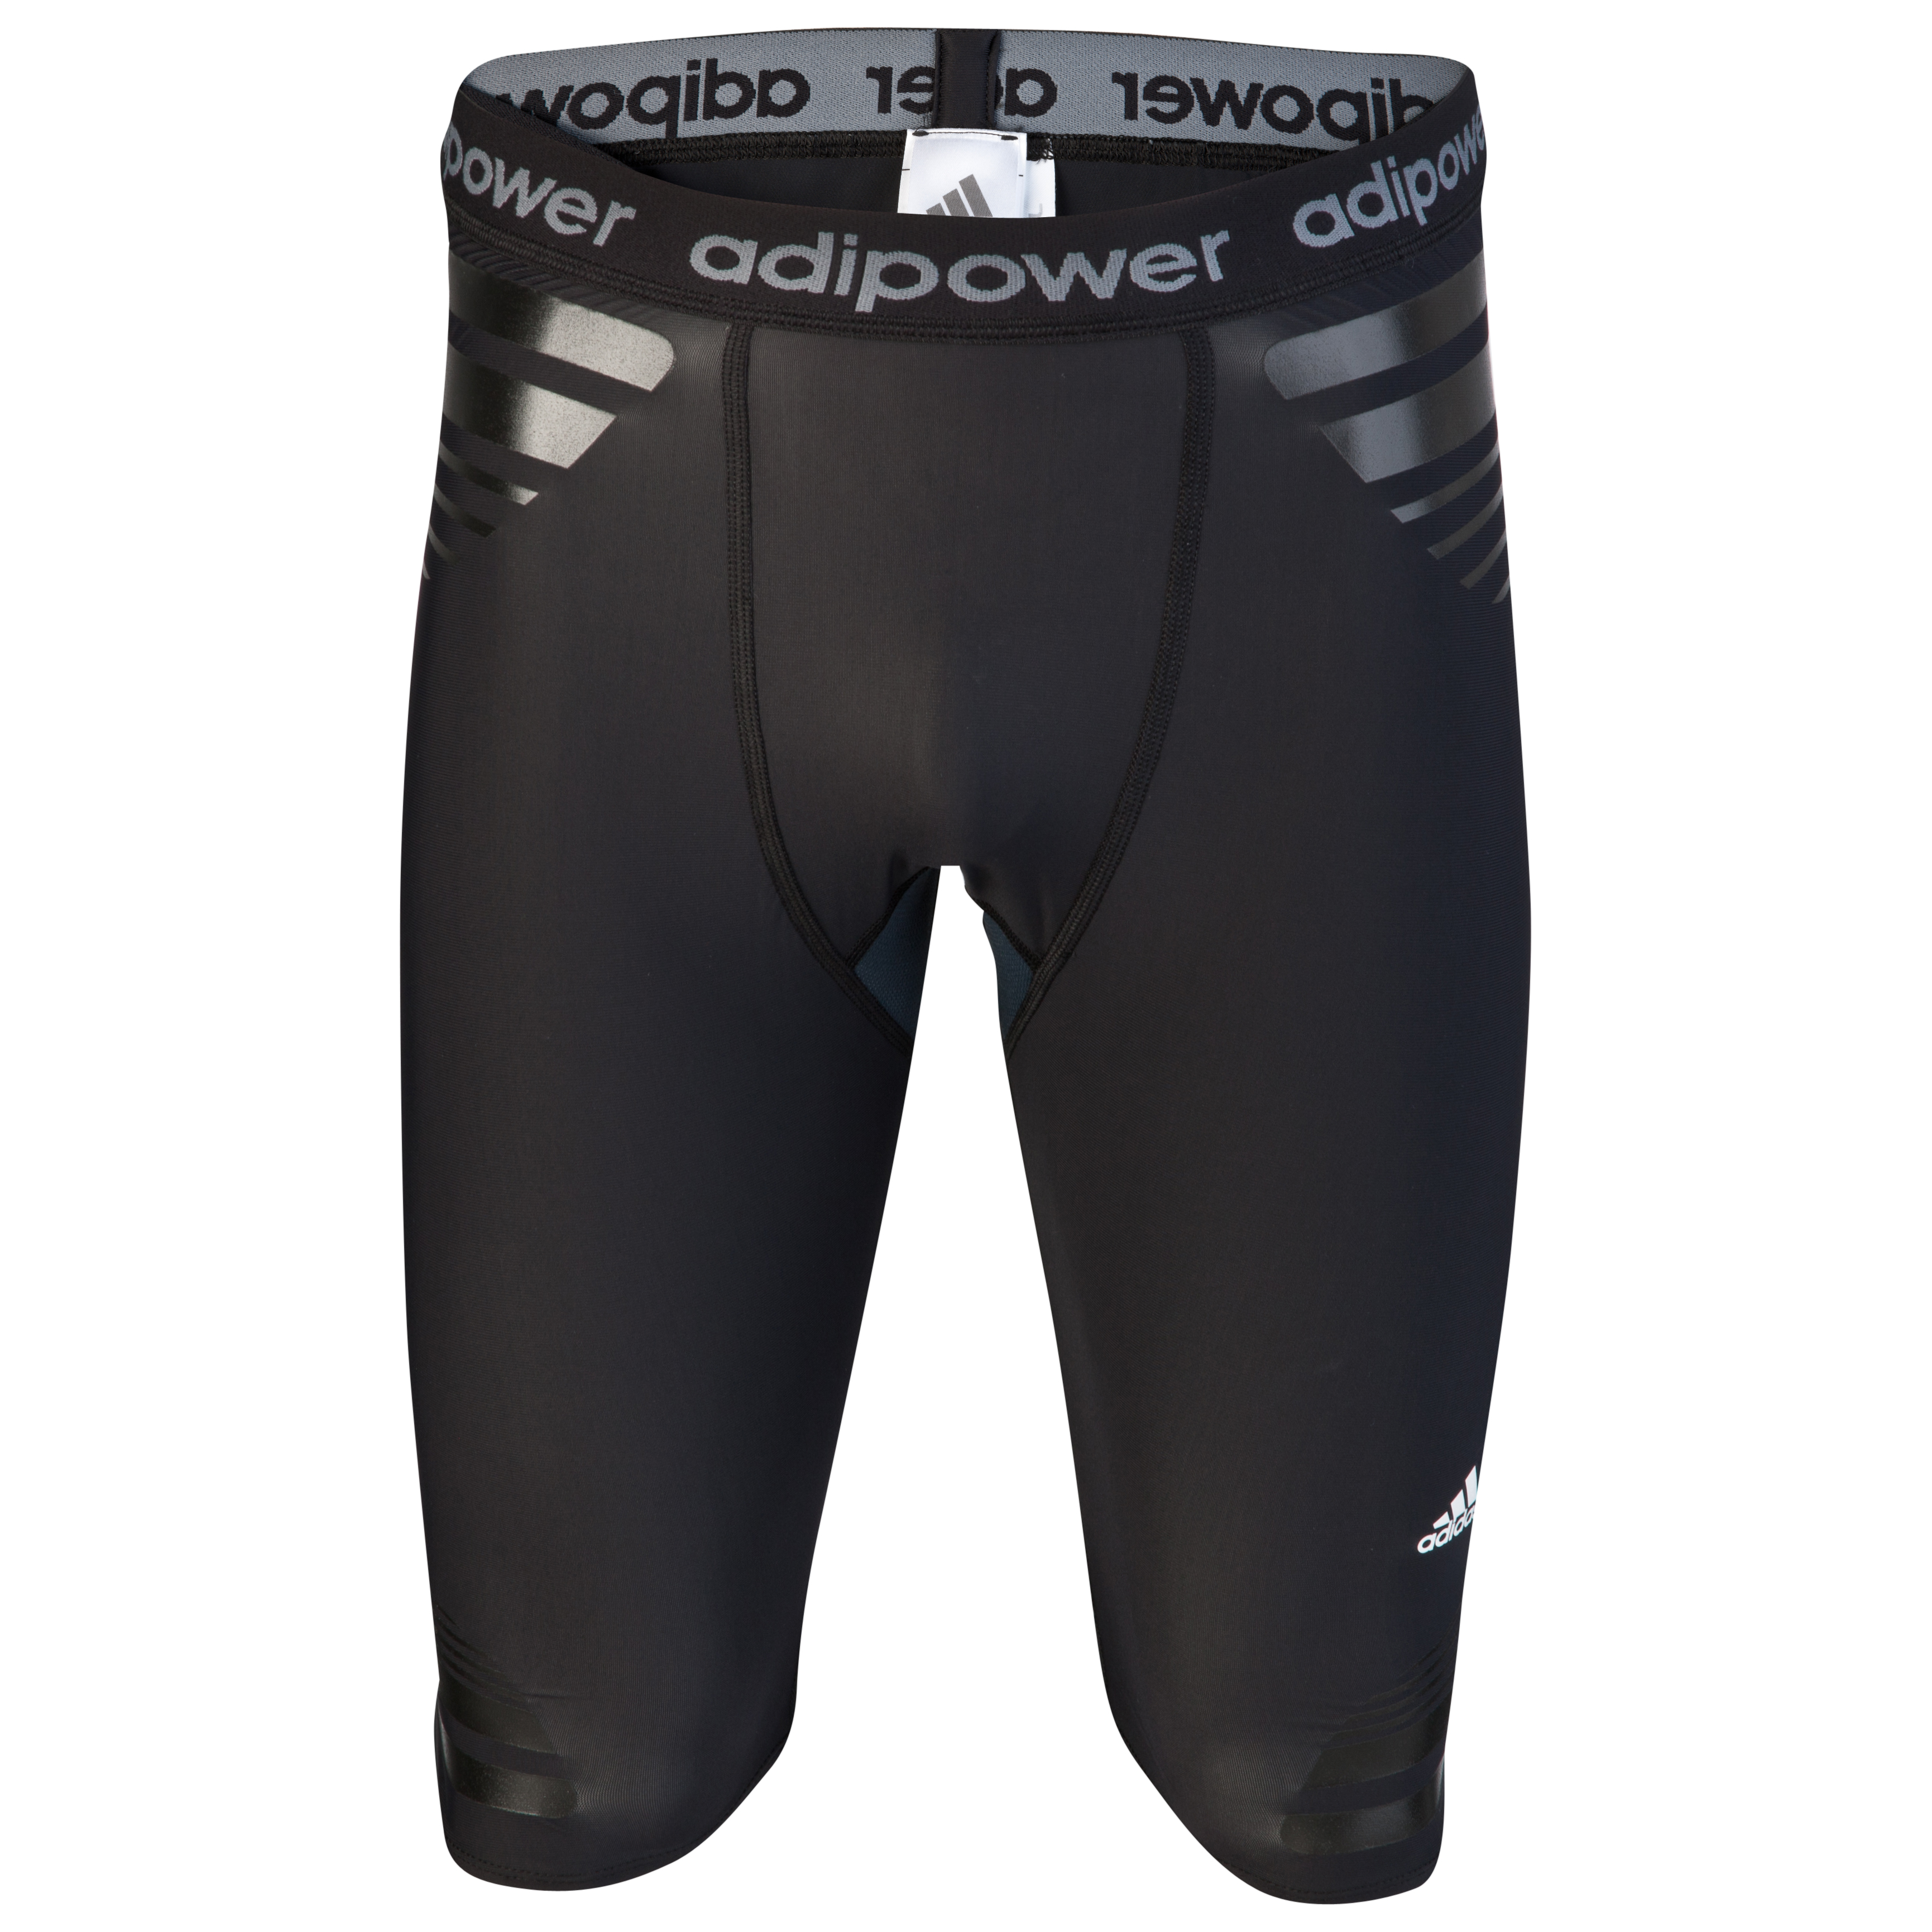 adidas TechFit PowerWeb Baselayer Shorts - Black